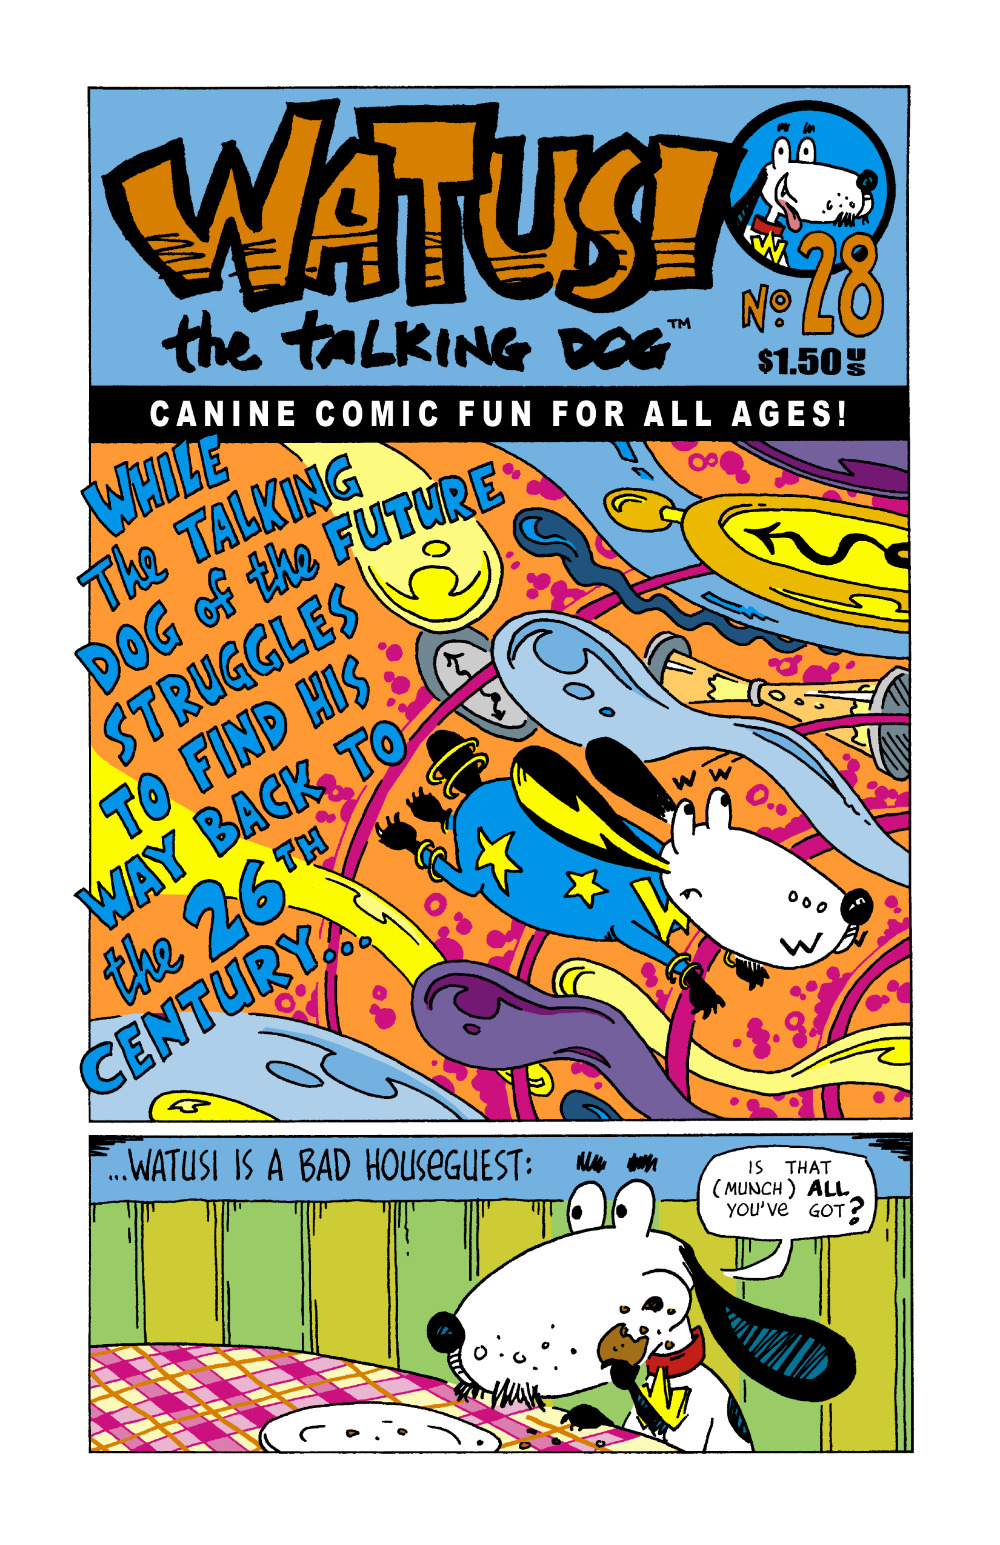 Watusi the Talking Dog #28 [.pdf ed.]